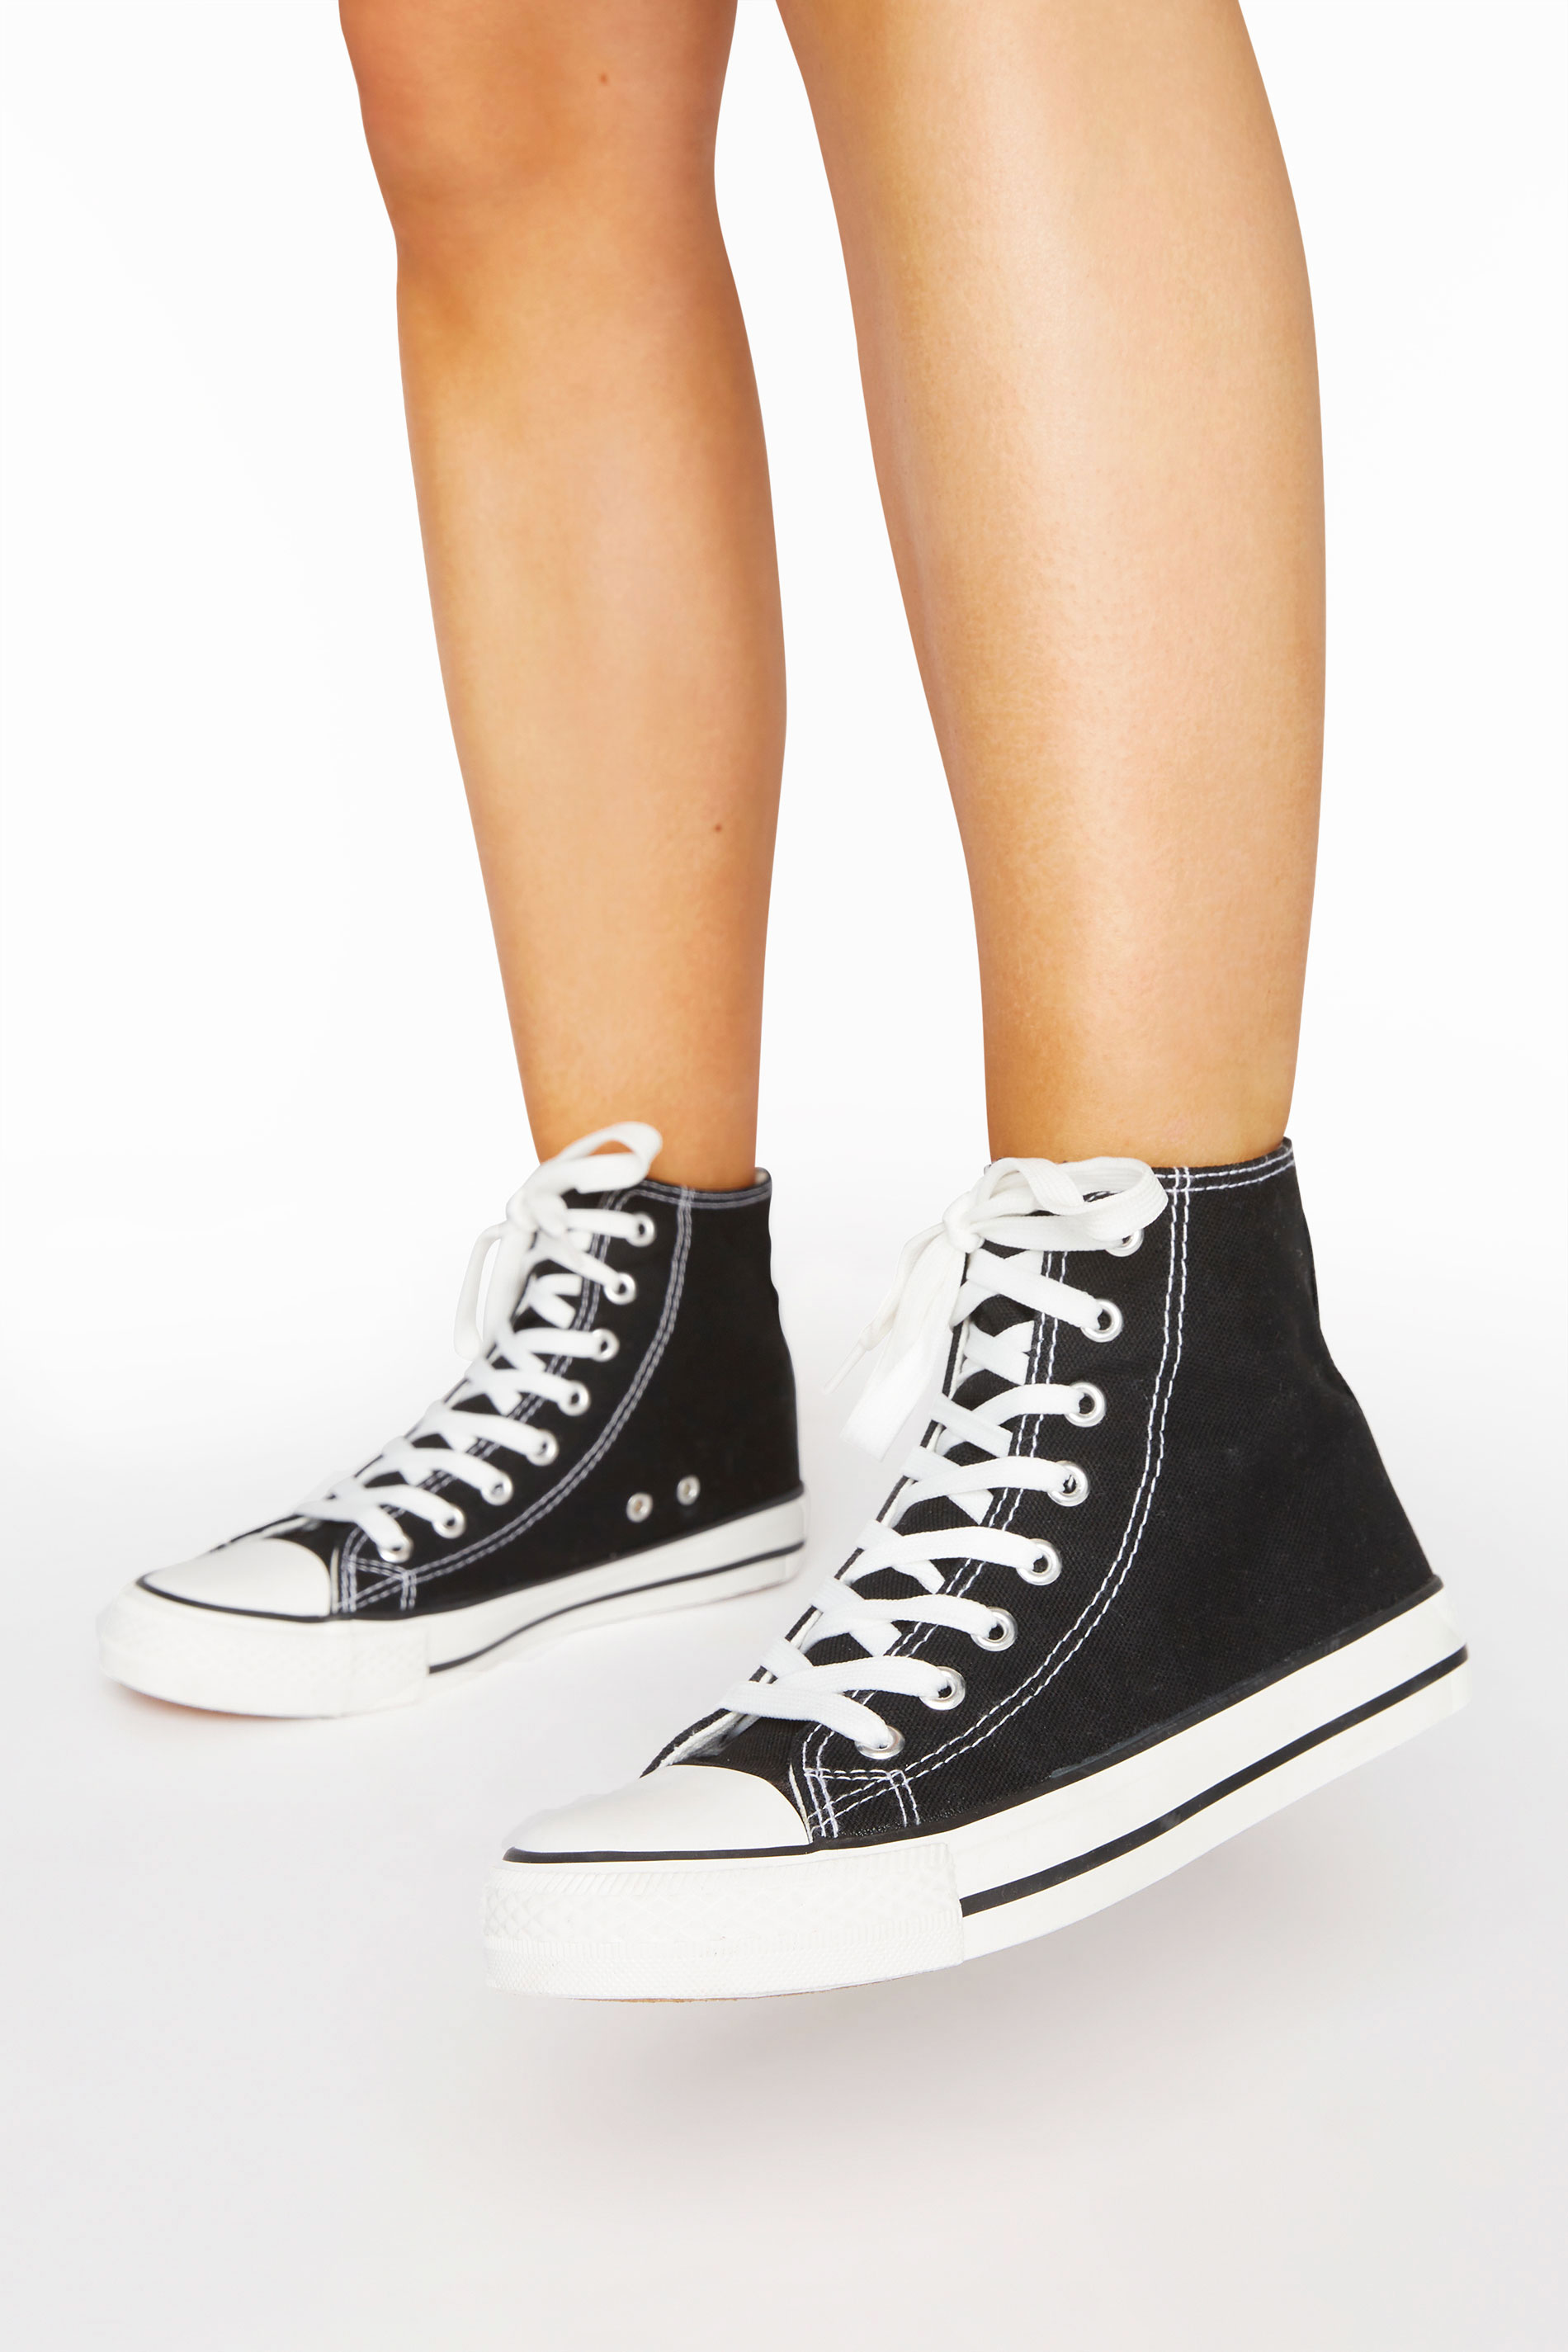 Black Canvas High Top Trainers In Wide Fit